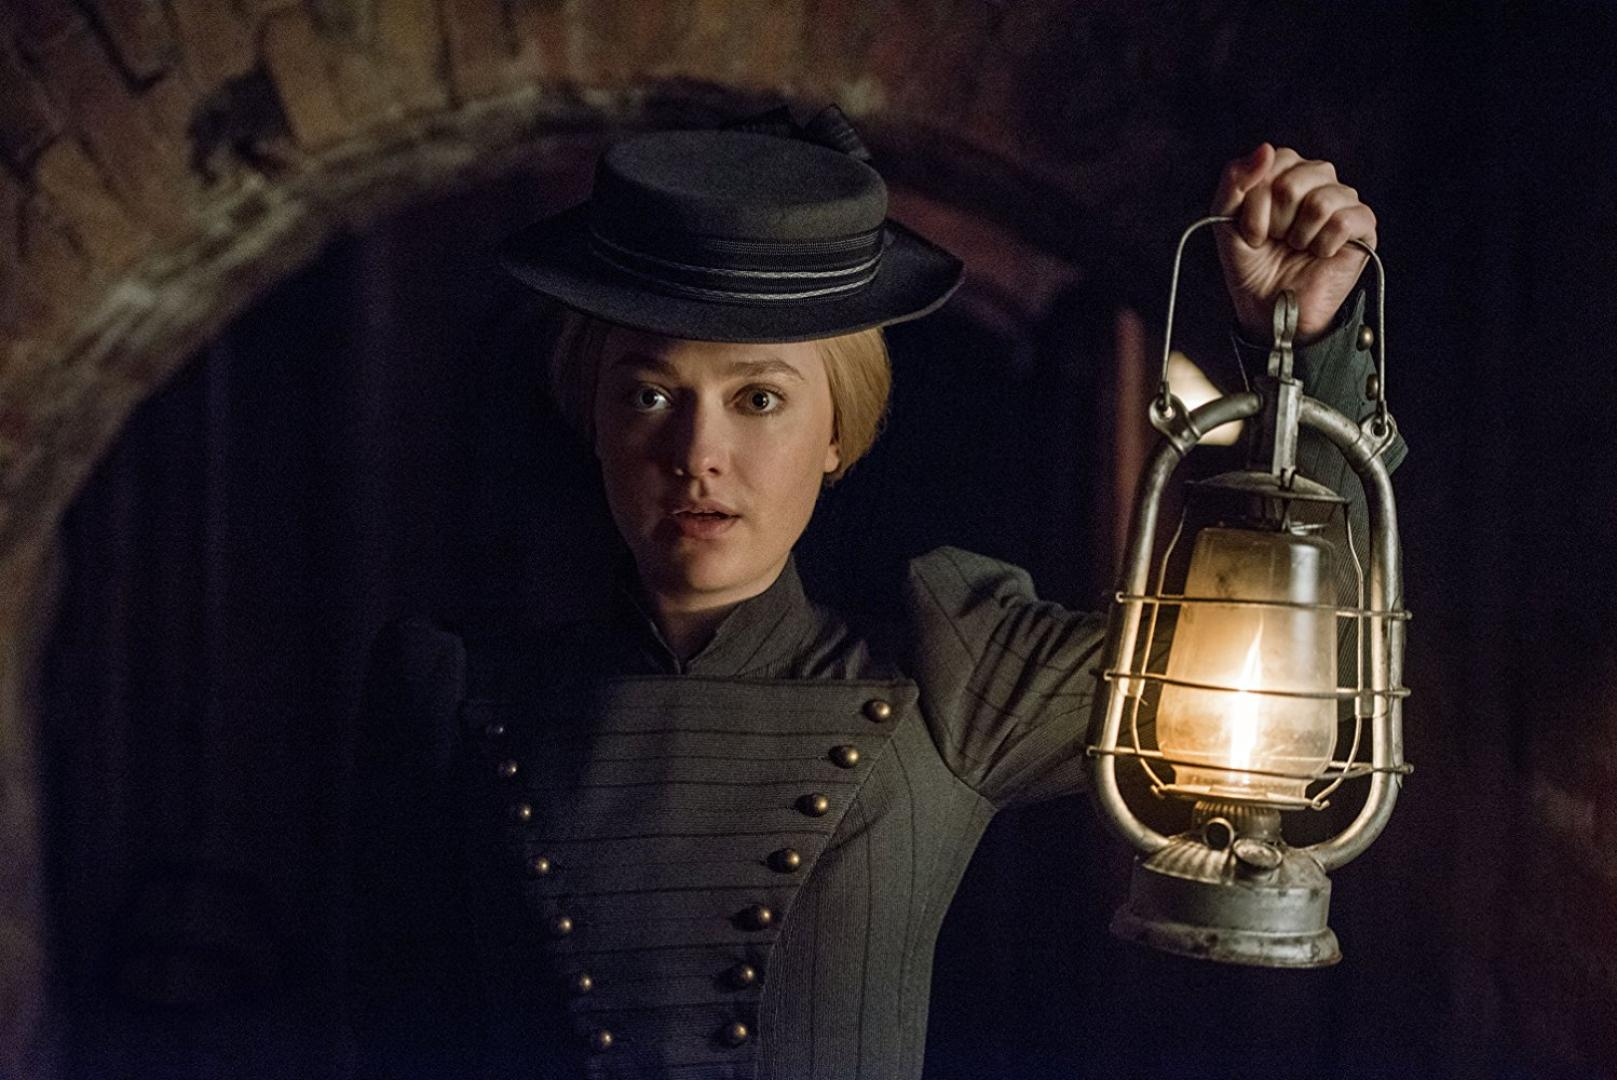 the_alienist1x10_2_kep